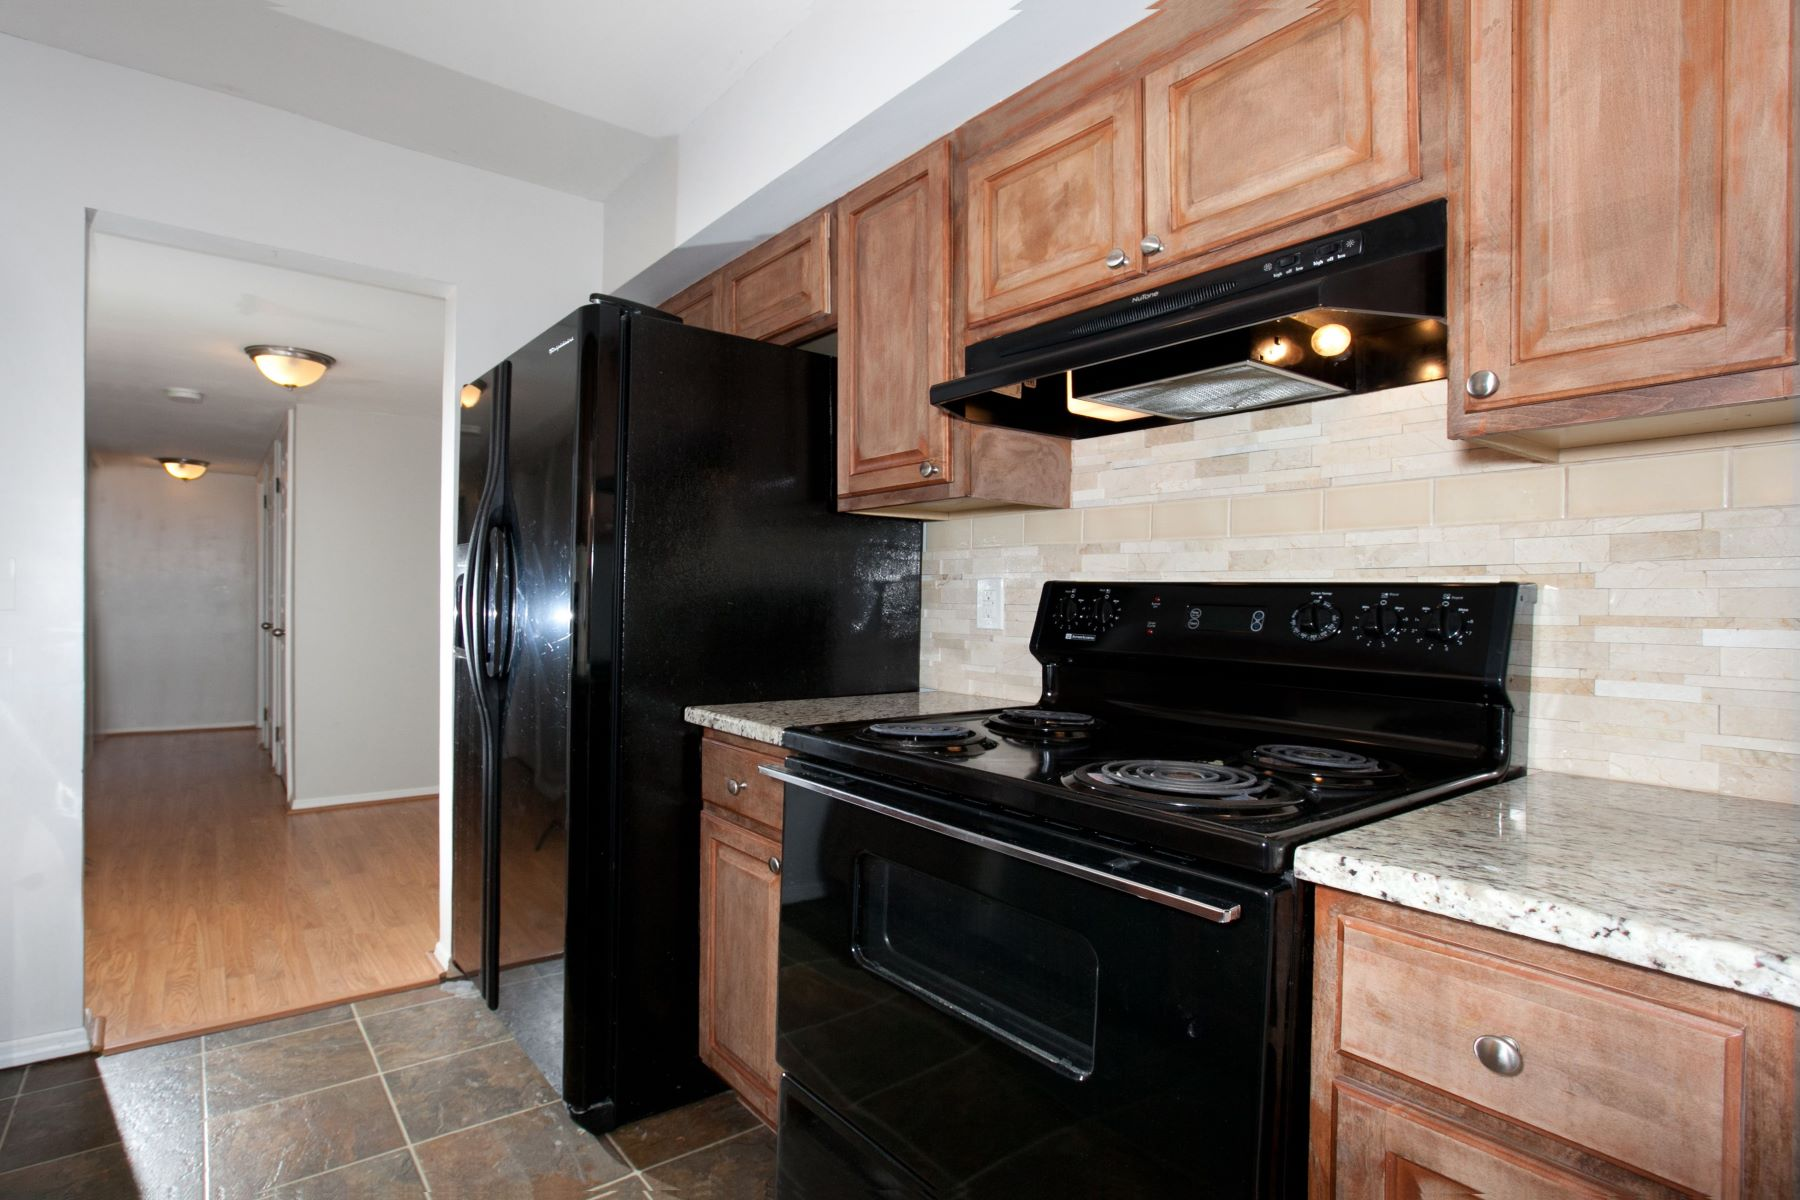 Additional photo for property listing at The Hanley Condos 801 North Hanley Road # D University City, Missouri 63130 United States